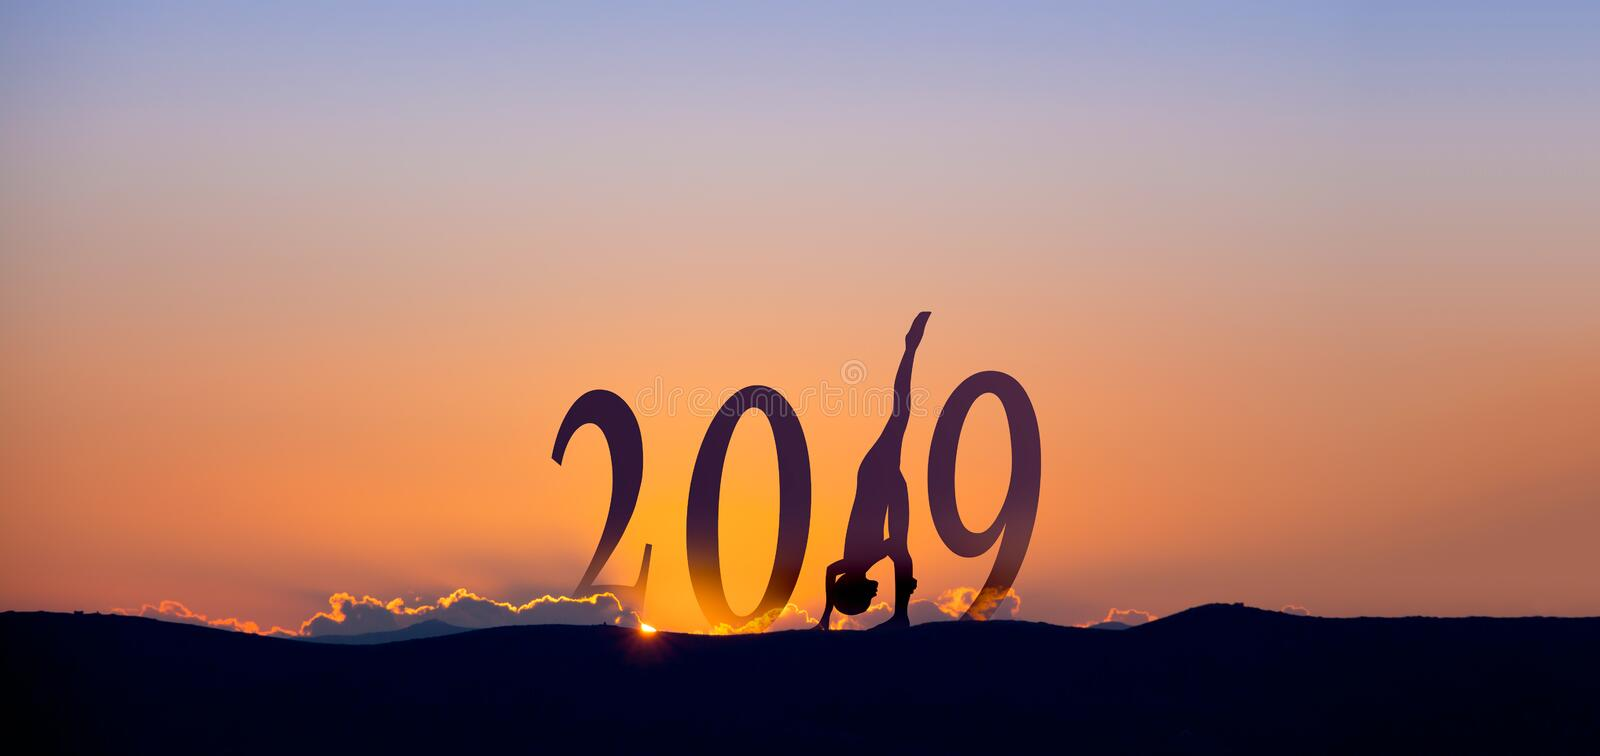 2019 On dark mountains with silhouette of a woman practicing yoga and sunrise as background. 2019 On dark mountains with silhouette of a woman practicing yoga stock photography